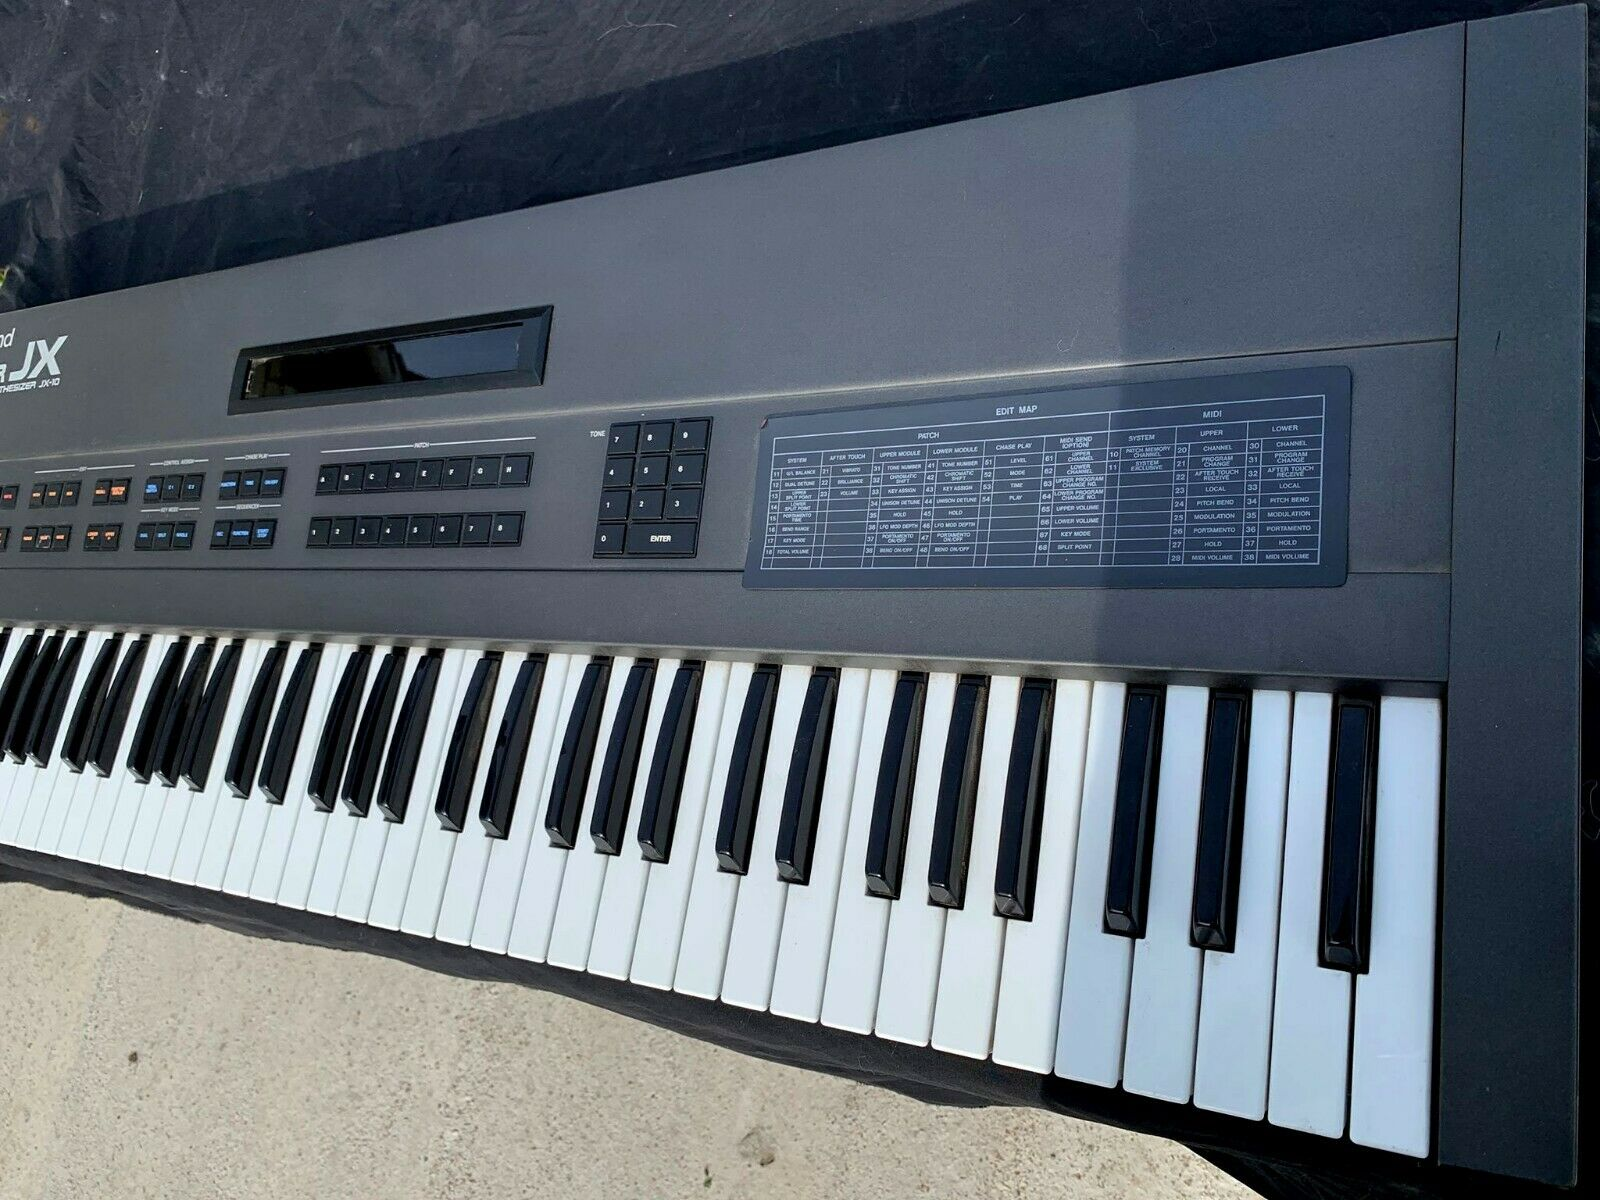 MATRIXSYNTH: Roland JX-10 'Super JX' Analogue Synth w/ Sound Library